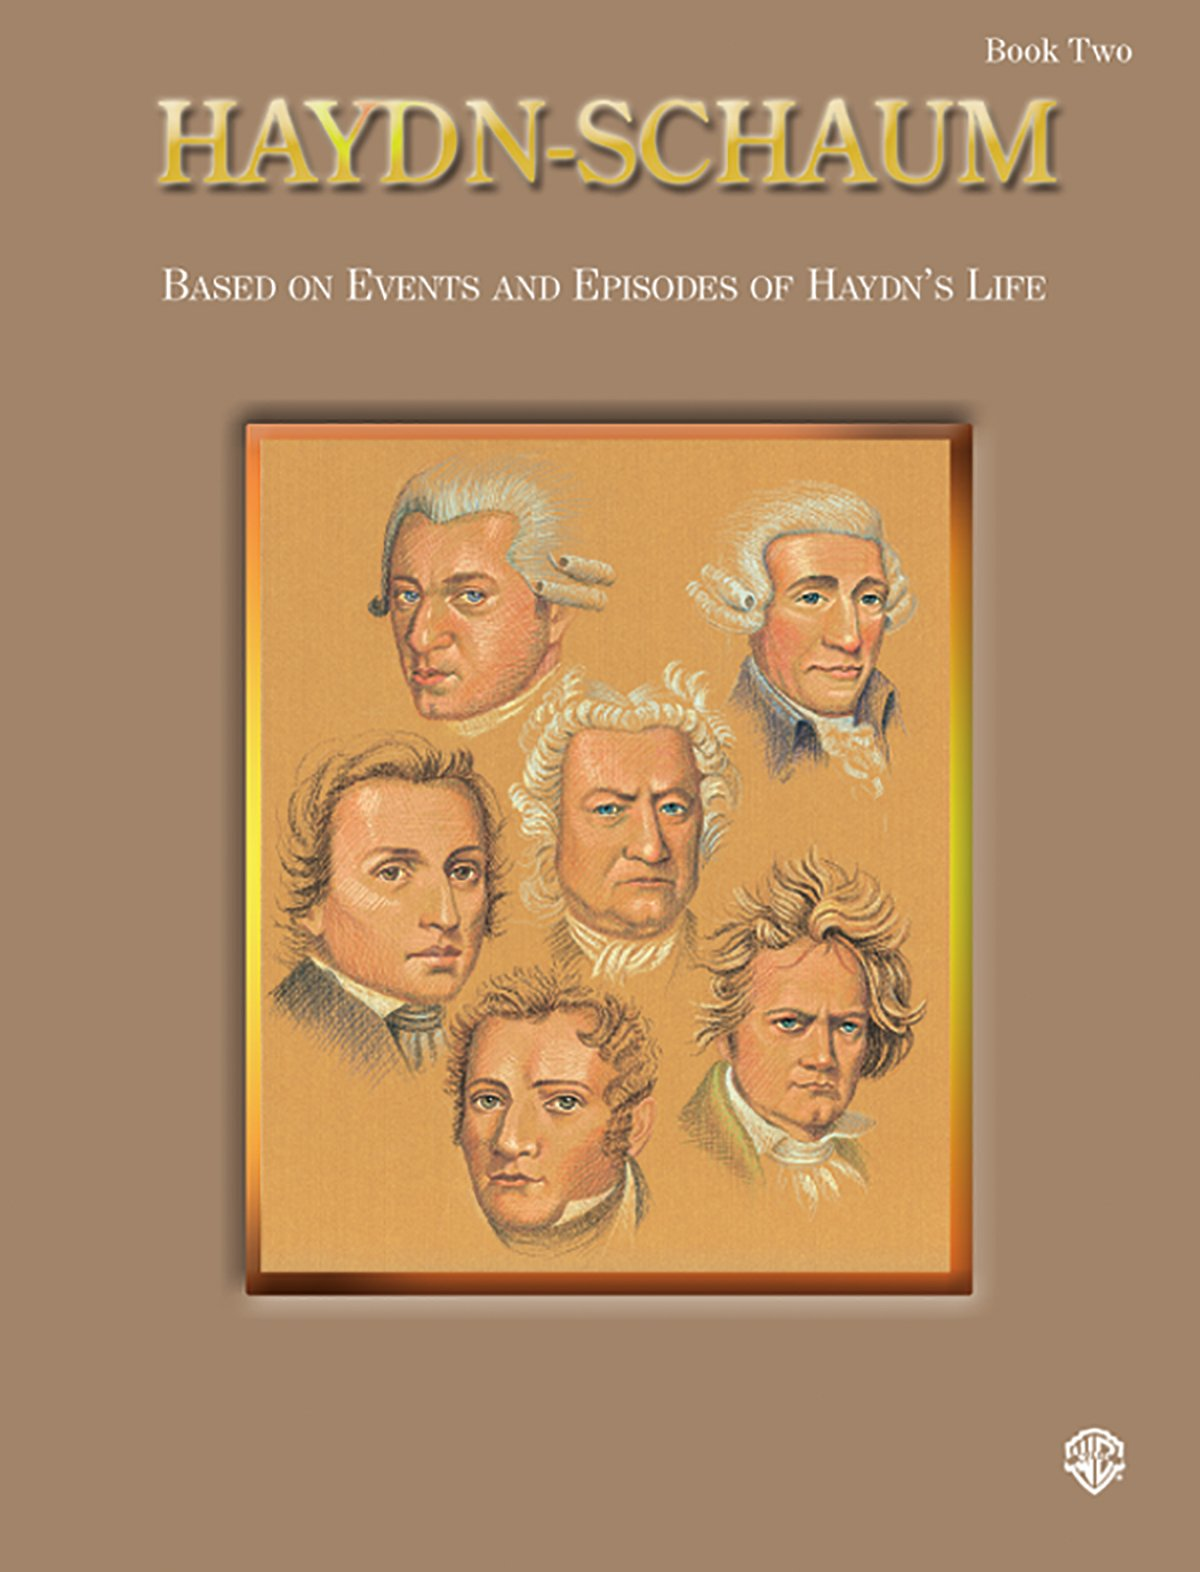 Haydn-Schaum: Based on Events and Episodes of Haydn's Life (2 volumes) ebook